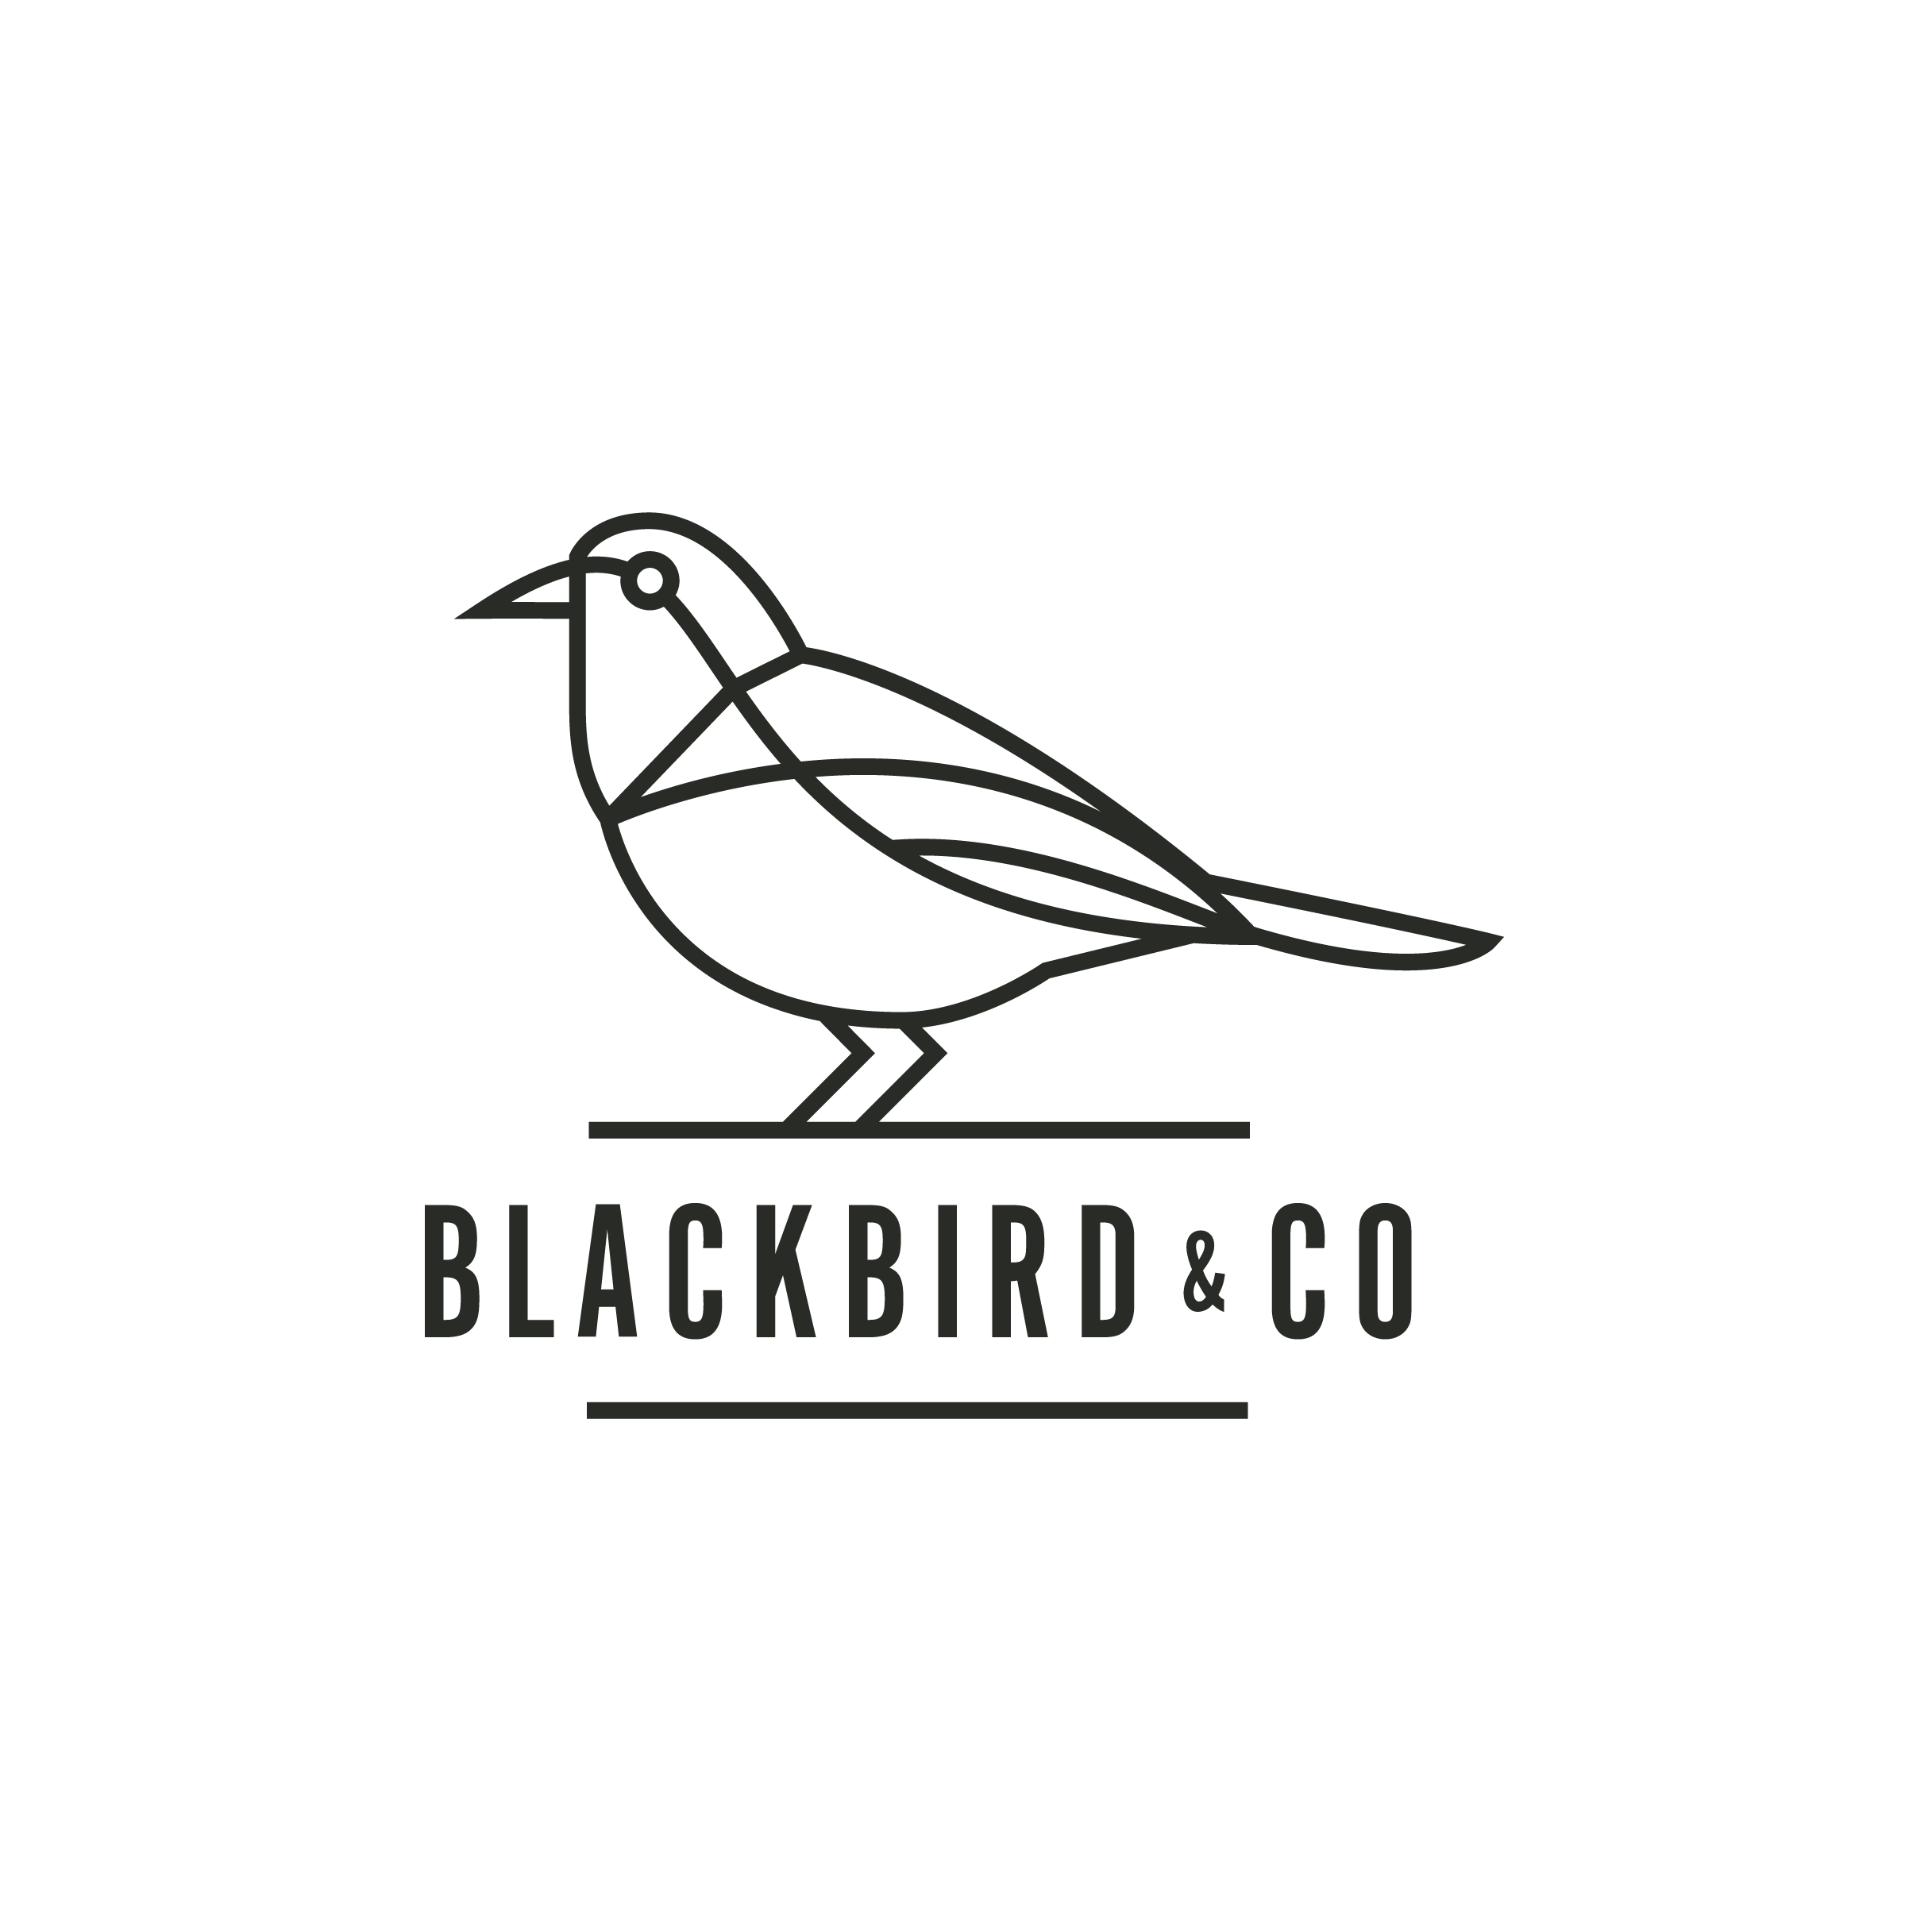 Blackbird & Co